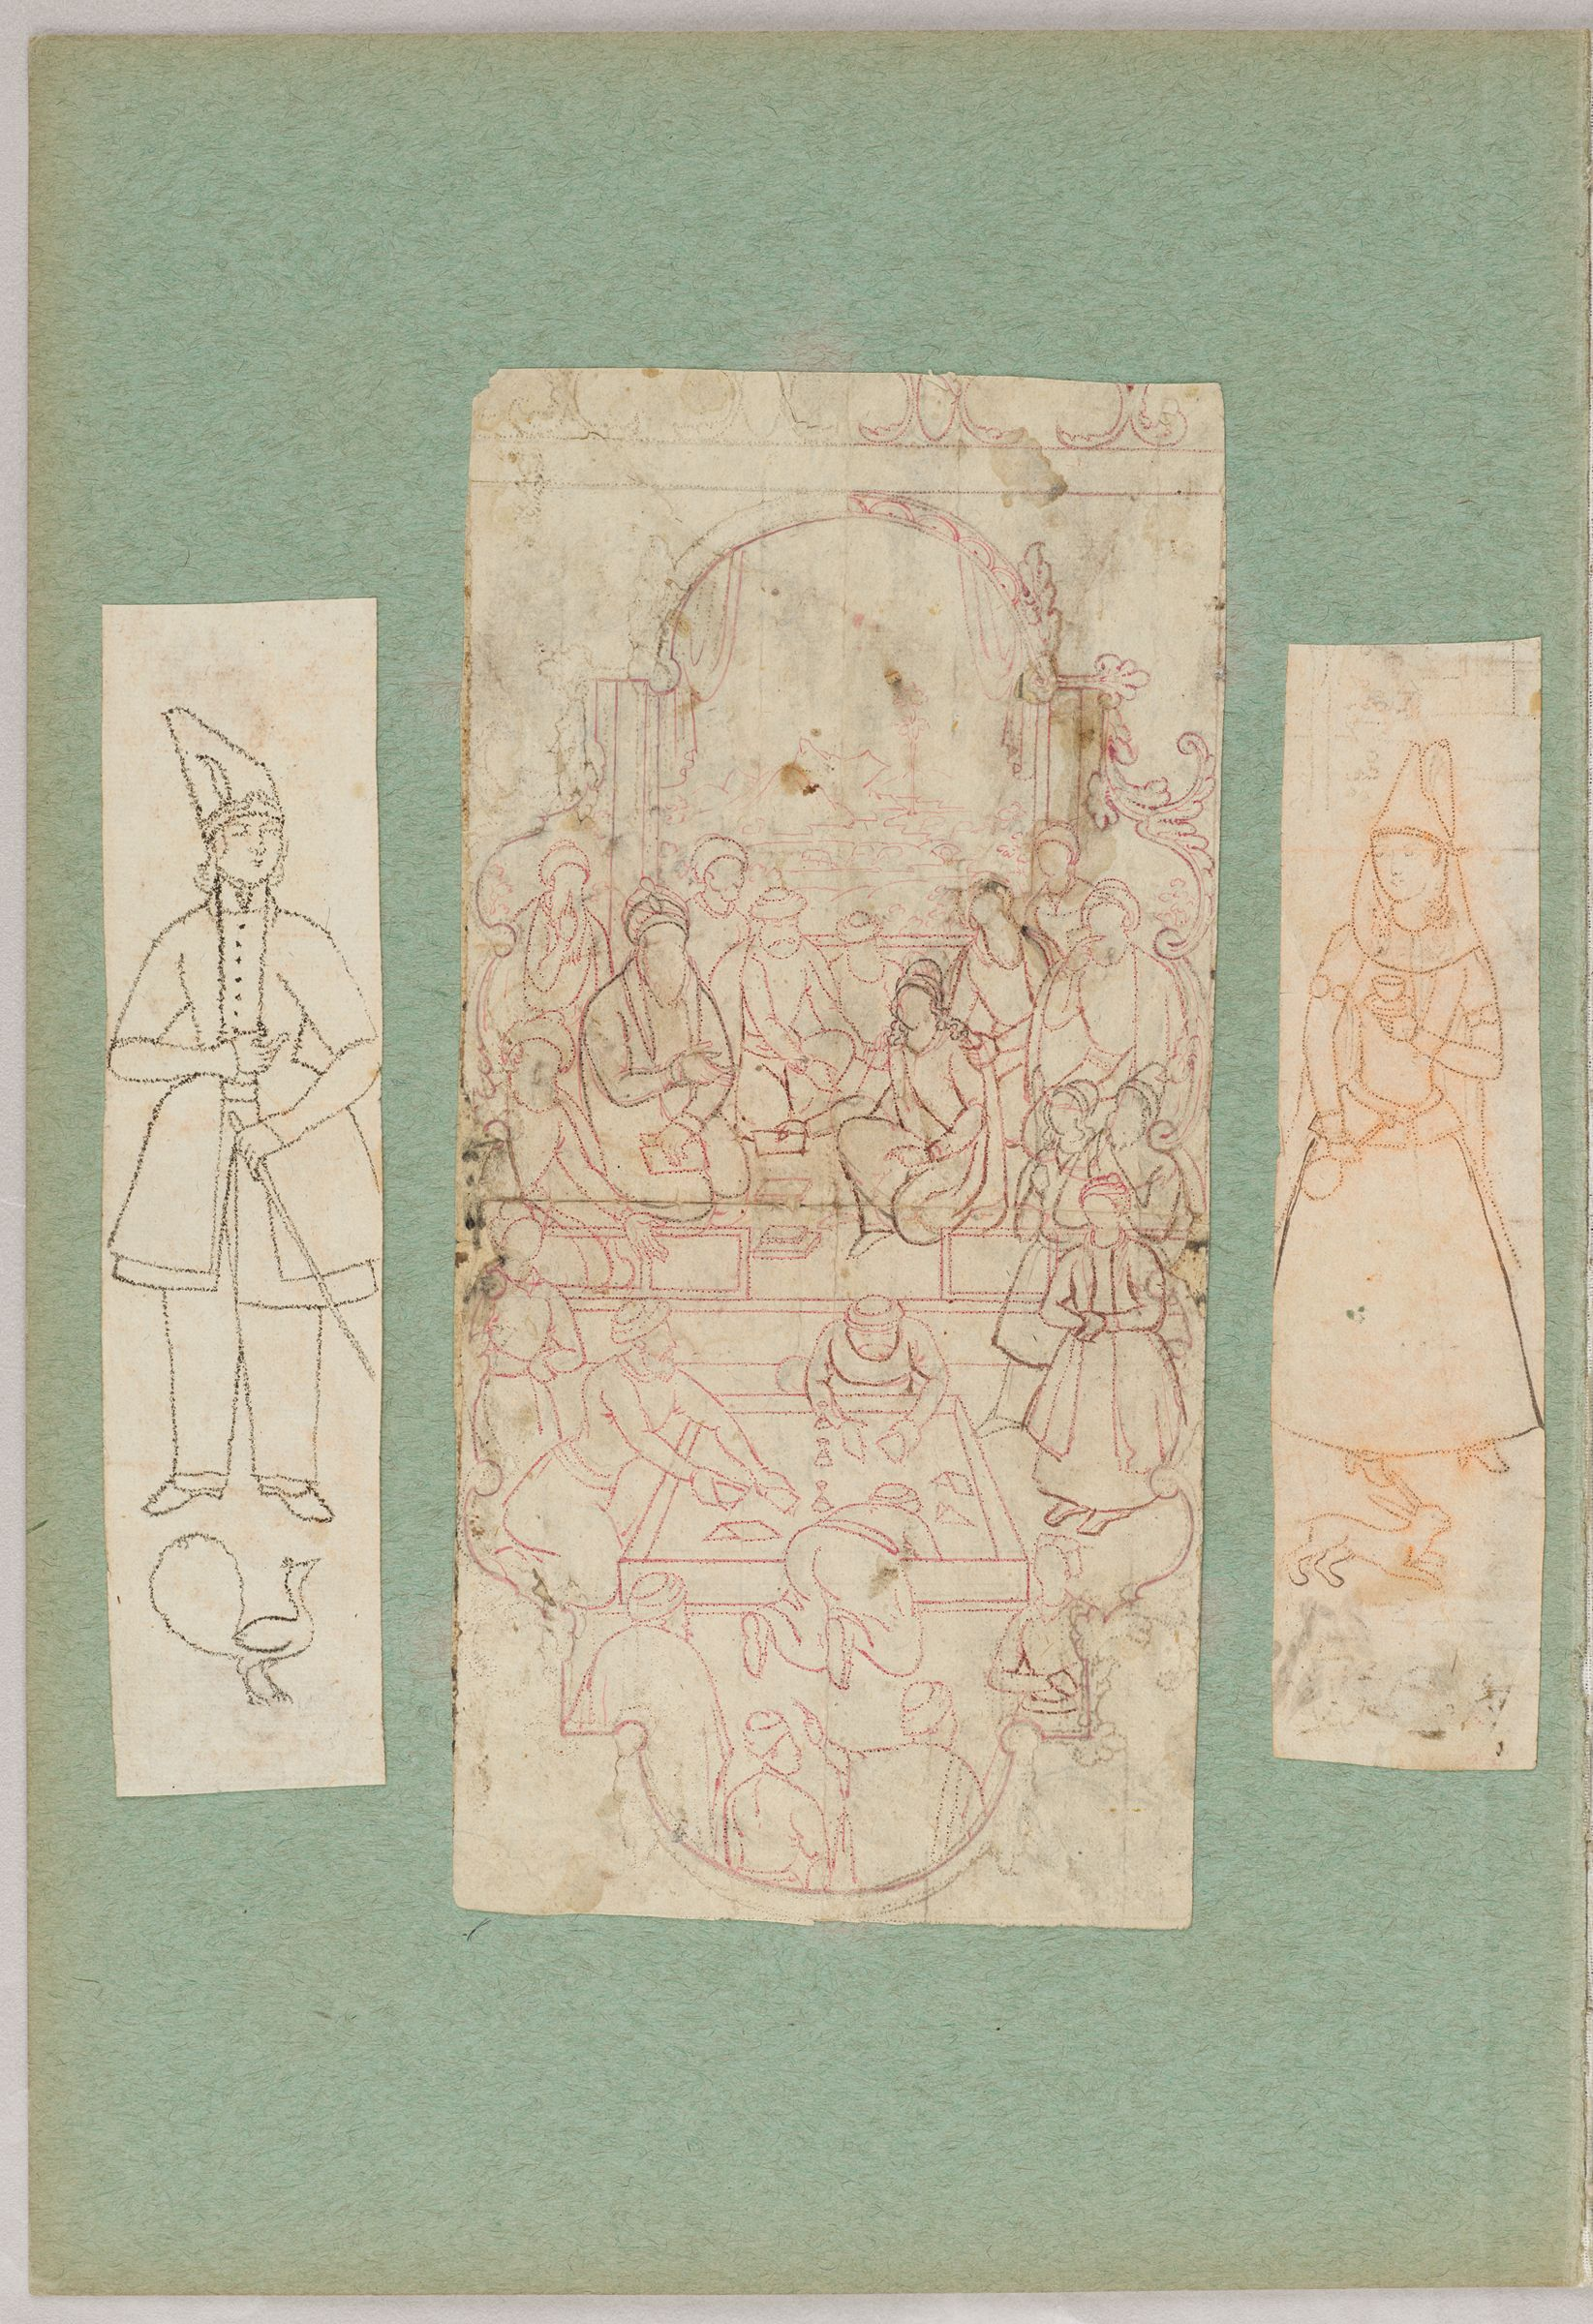 Folio 17 From An Album Of Drawings And Paintings: Three Drawings: Man And Peacock; Gathering Of Men On A Terrace; Woman And Rabbit (Recto) Two Drawings: Shirin On Horseback Visits Farhad At Mt. Bisutun; Bahram Gur Succeeds At Azada's Shooting Challenges (Verso)